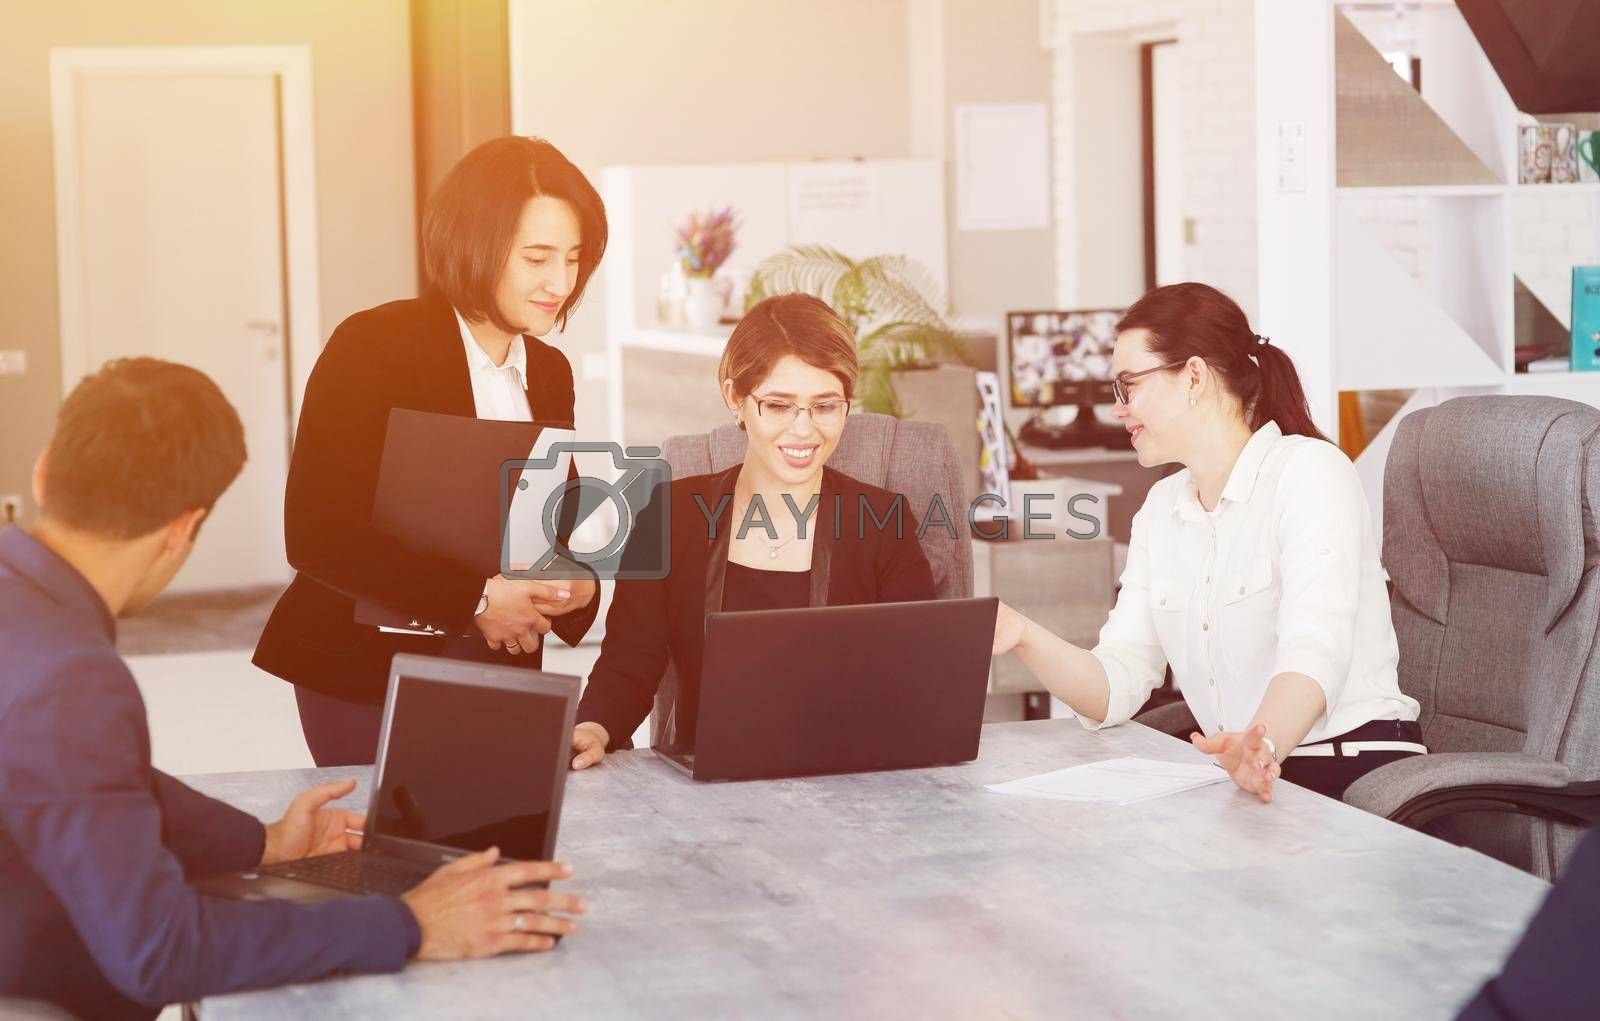 Royalty free image of Three young successful business women in the office working together on a project by selinsmo